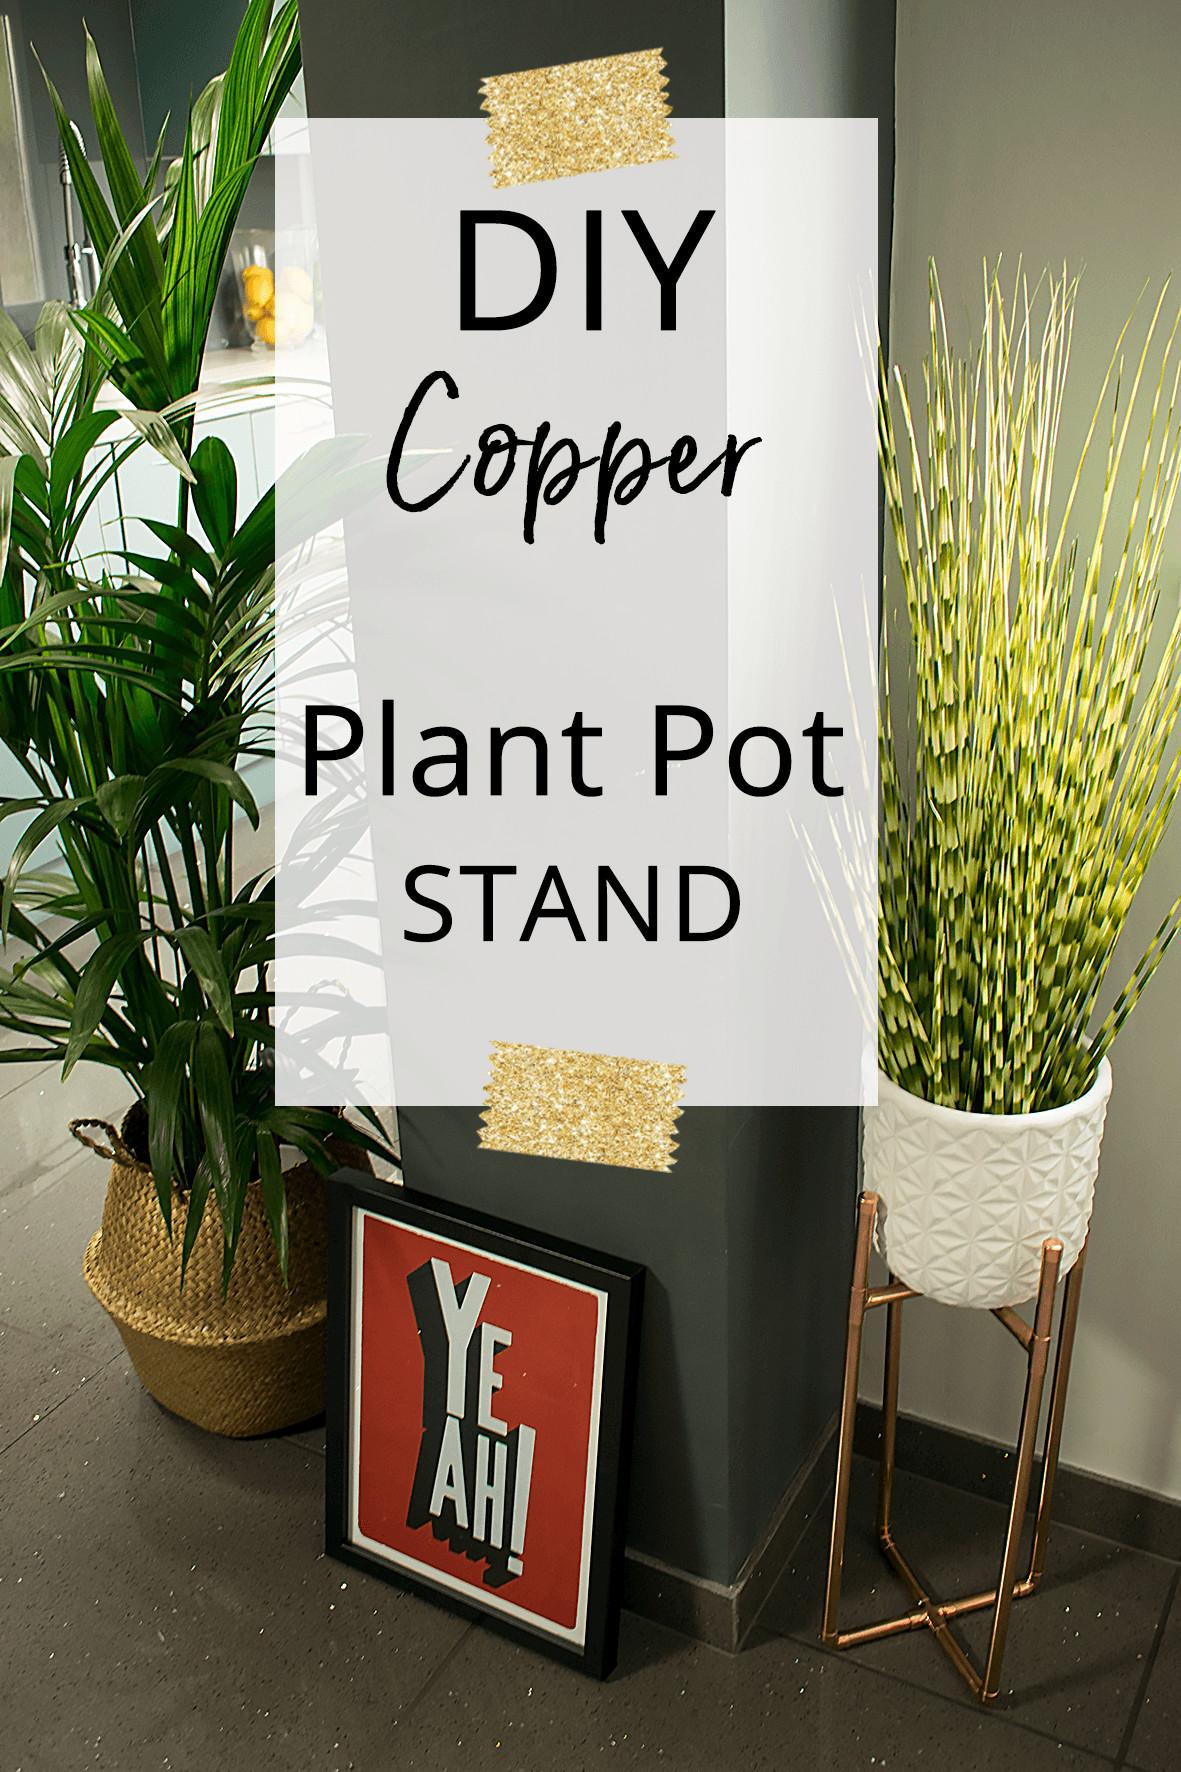 Make Diy Copper Plant Stand Caradise